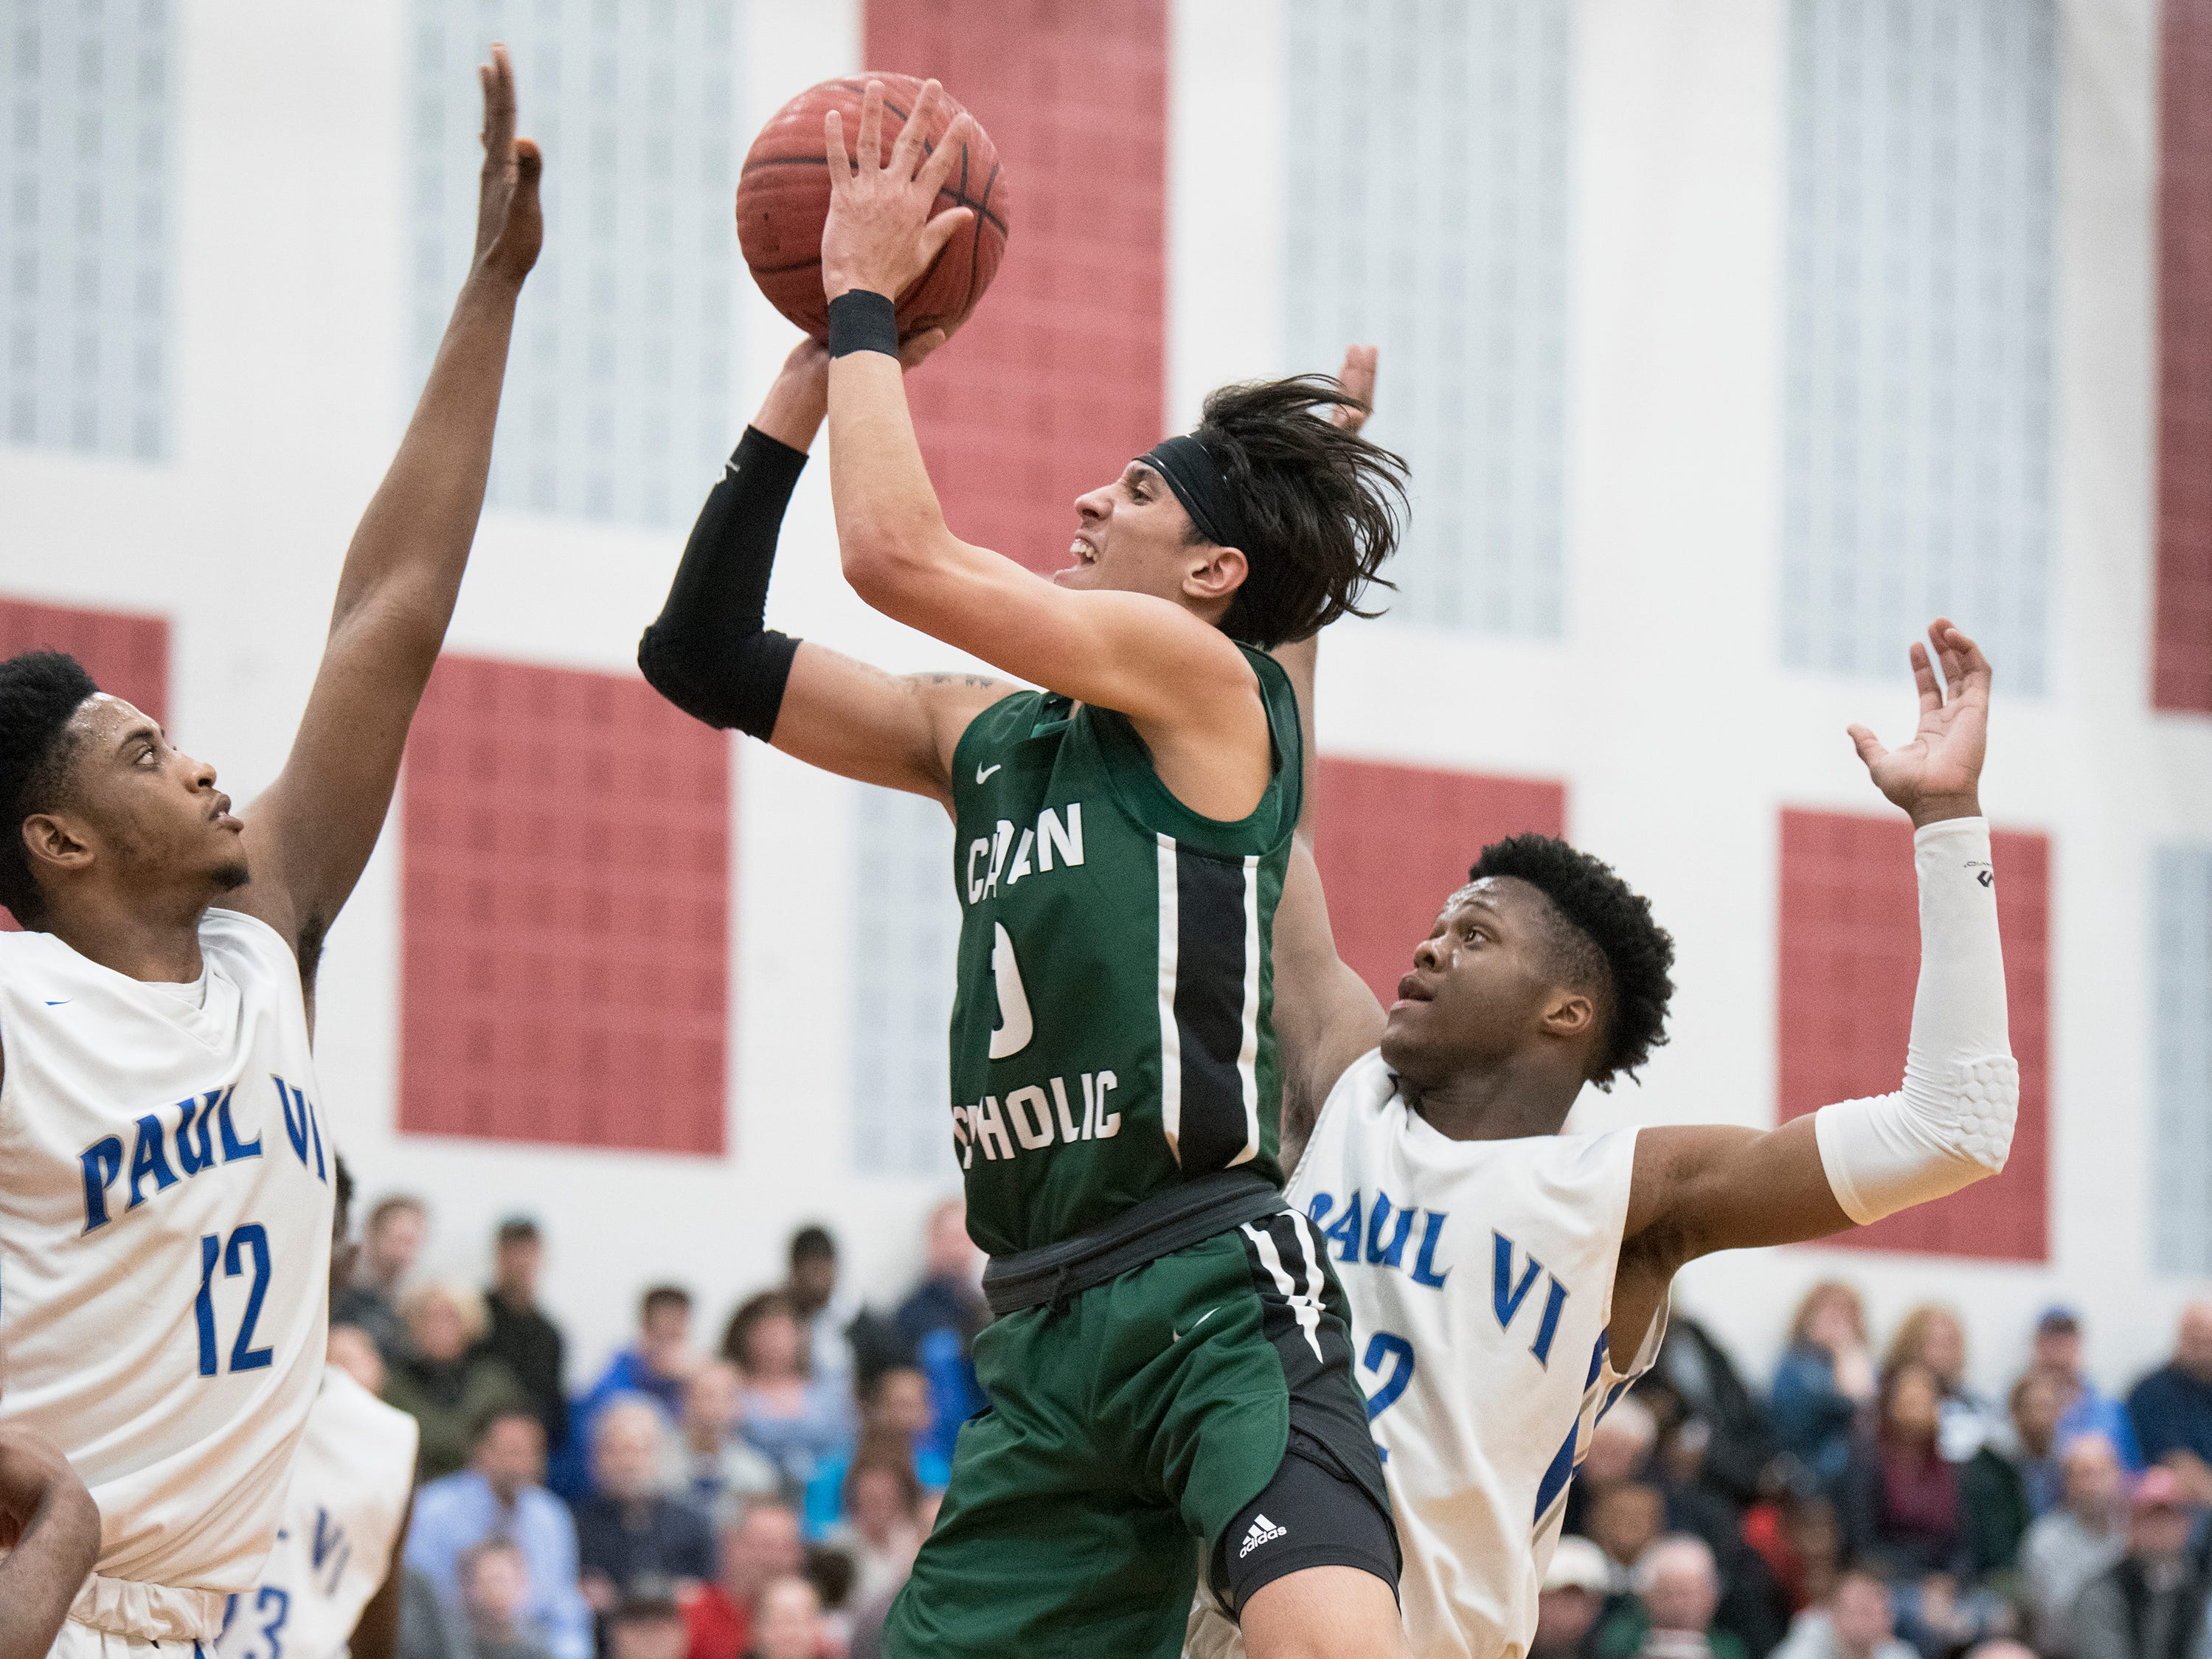 Camden Catholic's Valen Tejada puts up a shot during the 2nd half of Non-Public A South boys basketball final between Camden Catholic and Paul VI played at Jackson Liberty High School on Tuesday, March 5, 2019.